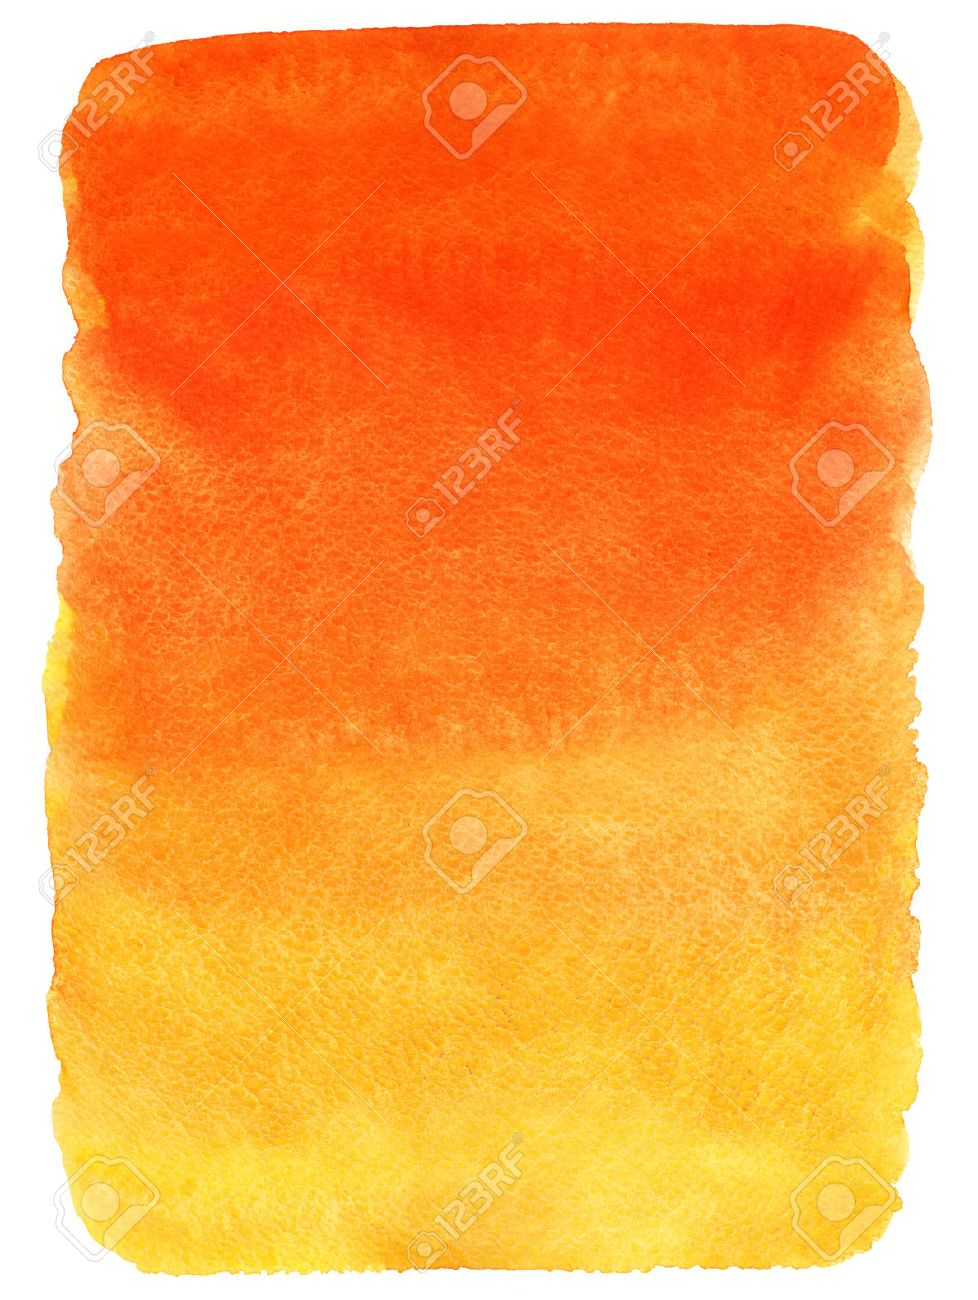 fire or sunset colors watercolor background red orange yellow